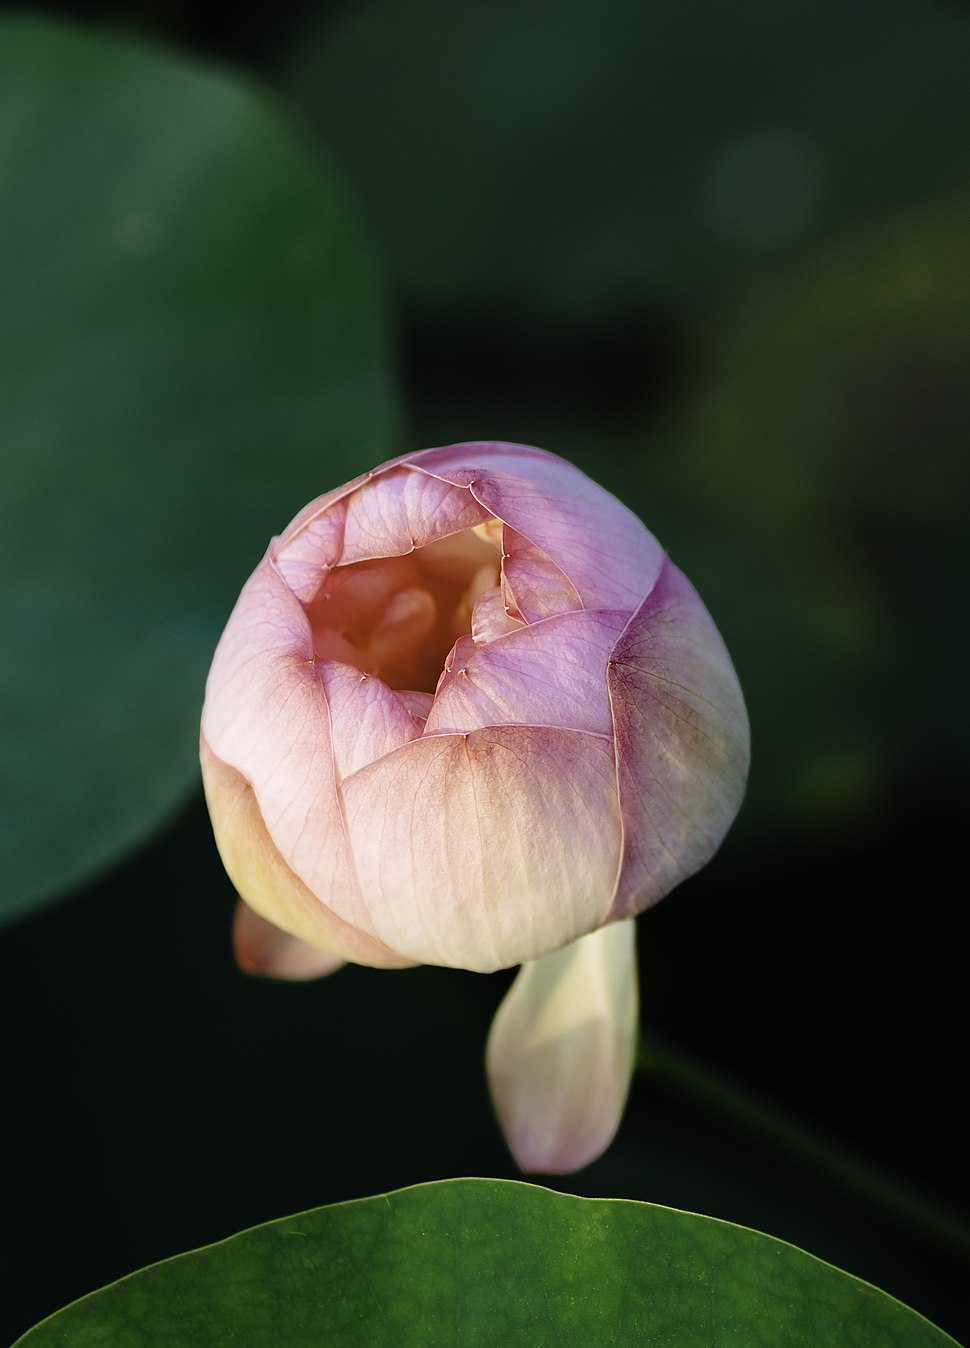 A budding lotus flower